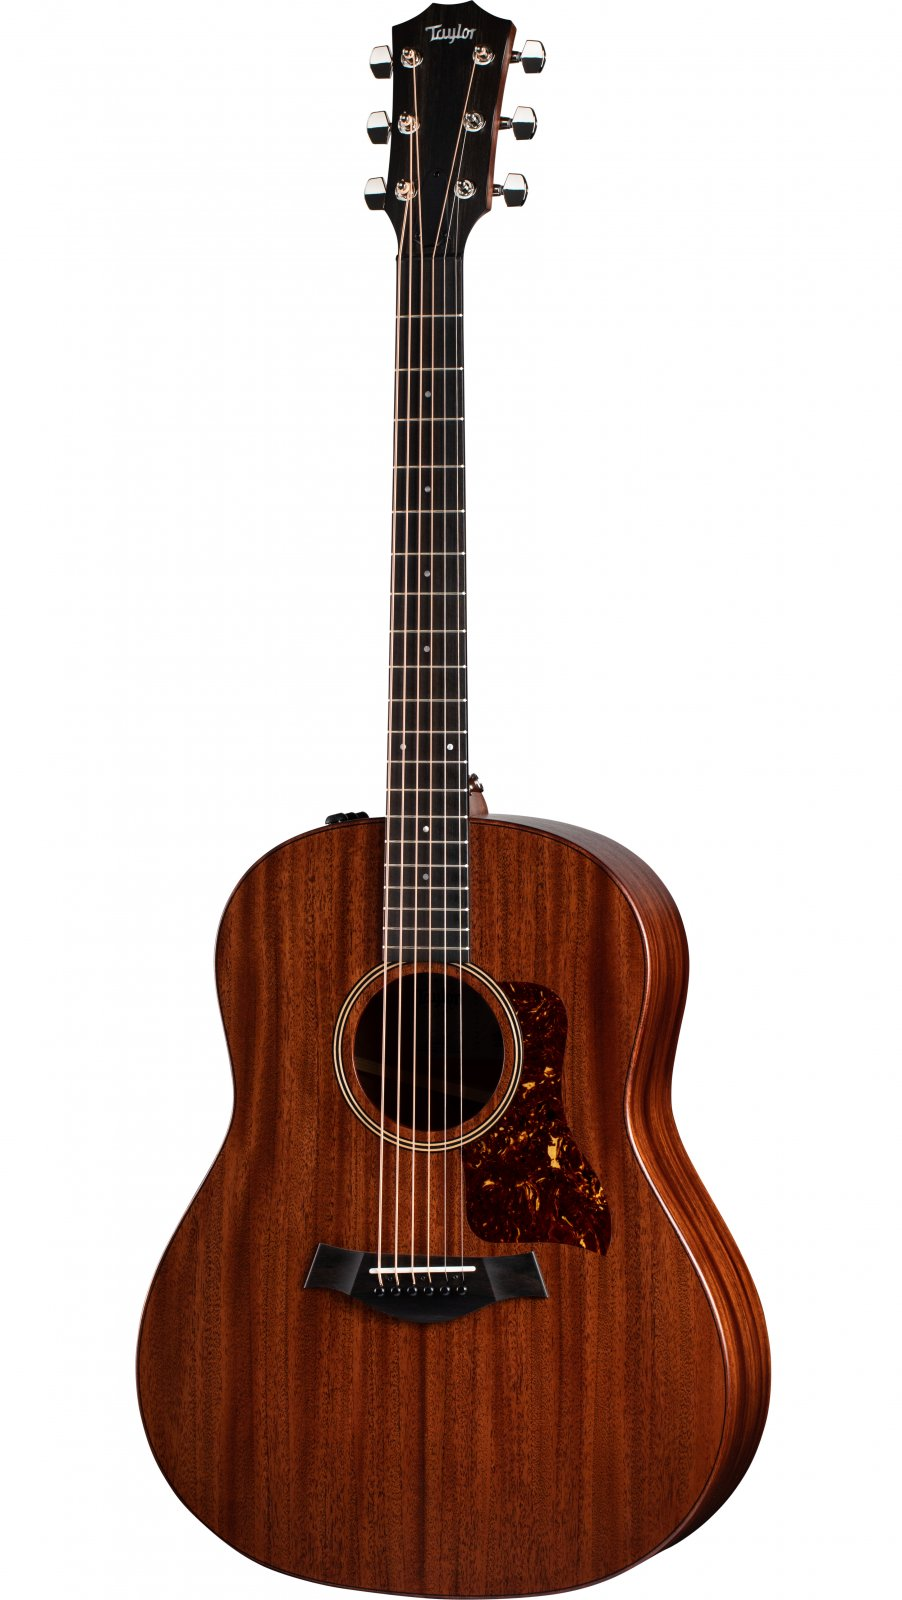 Taylor AD27e American Dream Series Acoustic/Electric Grand Pacific Guitar with AeroCase